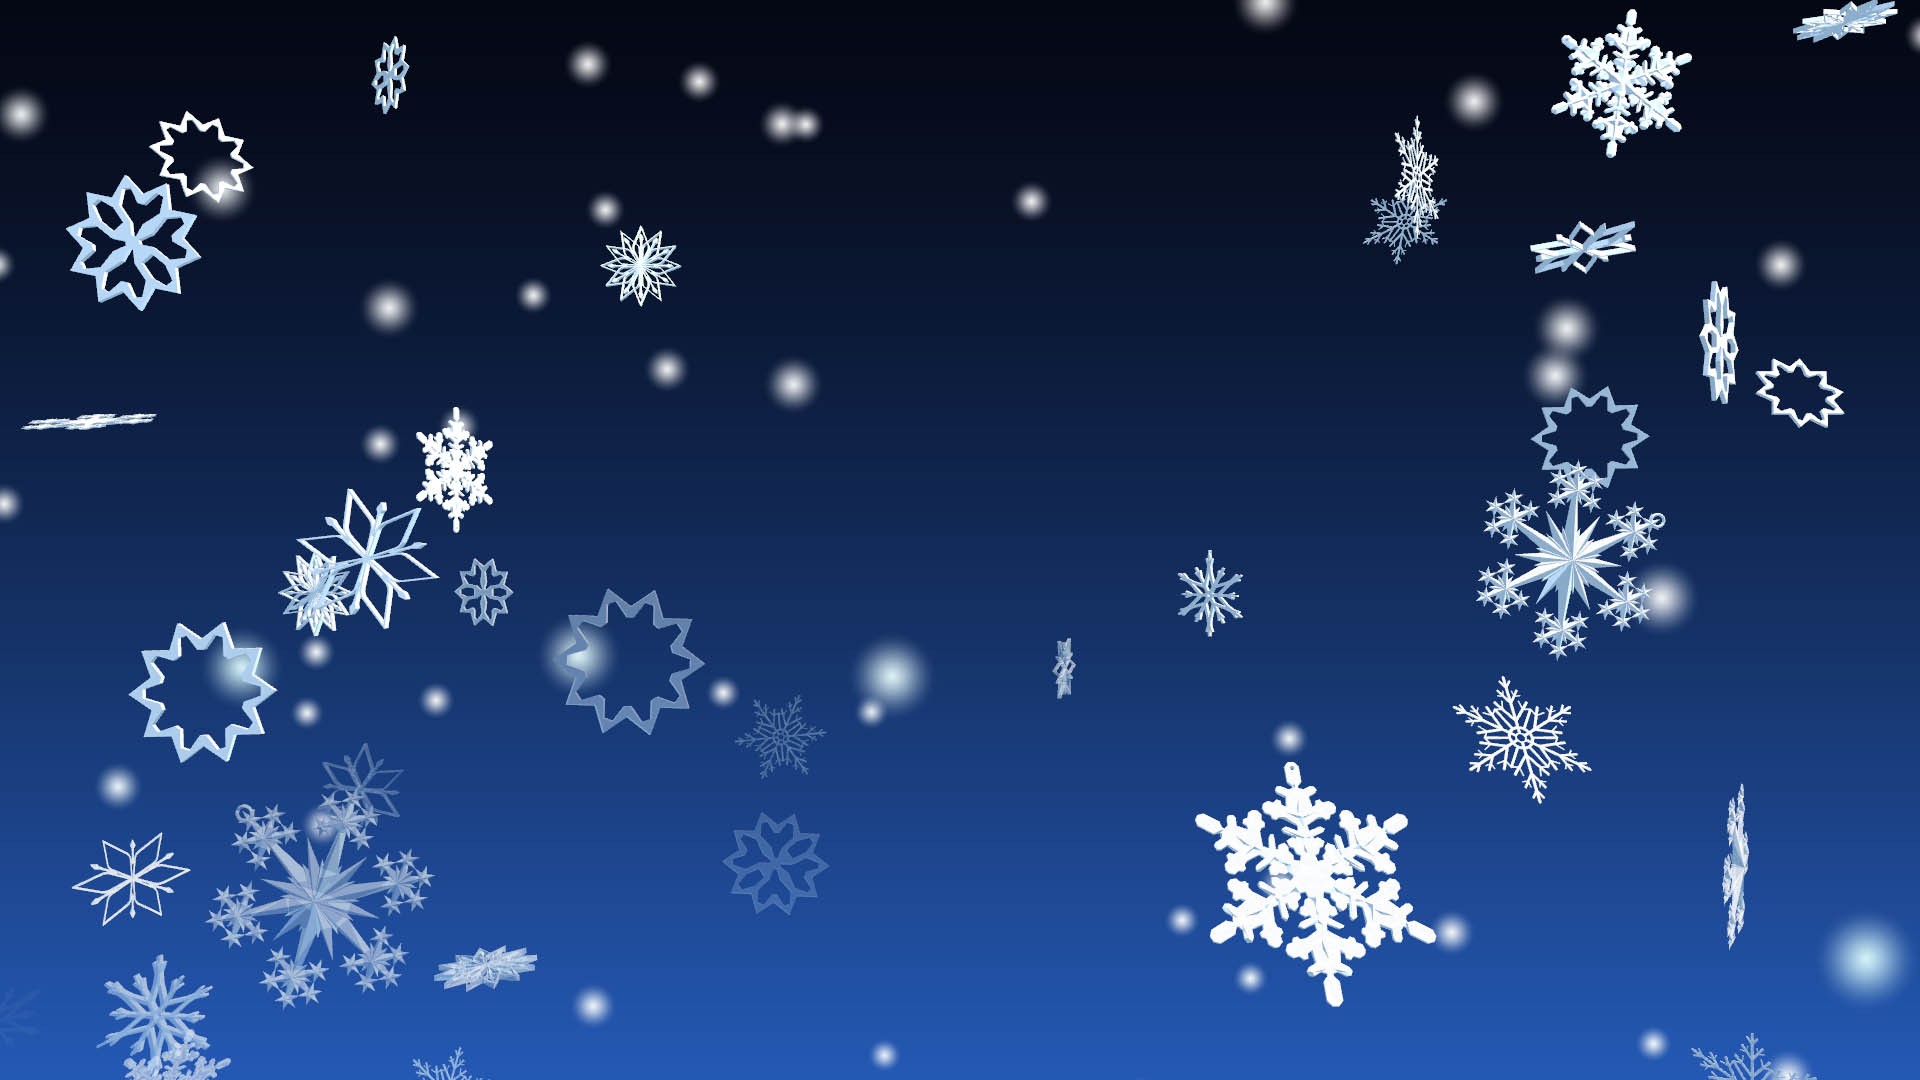 3d winter snowflakes screensaver 3d snowflakes - Free screensavers snowflakes falling ...